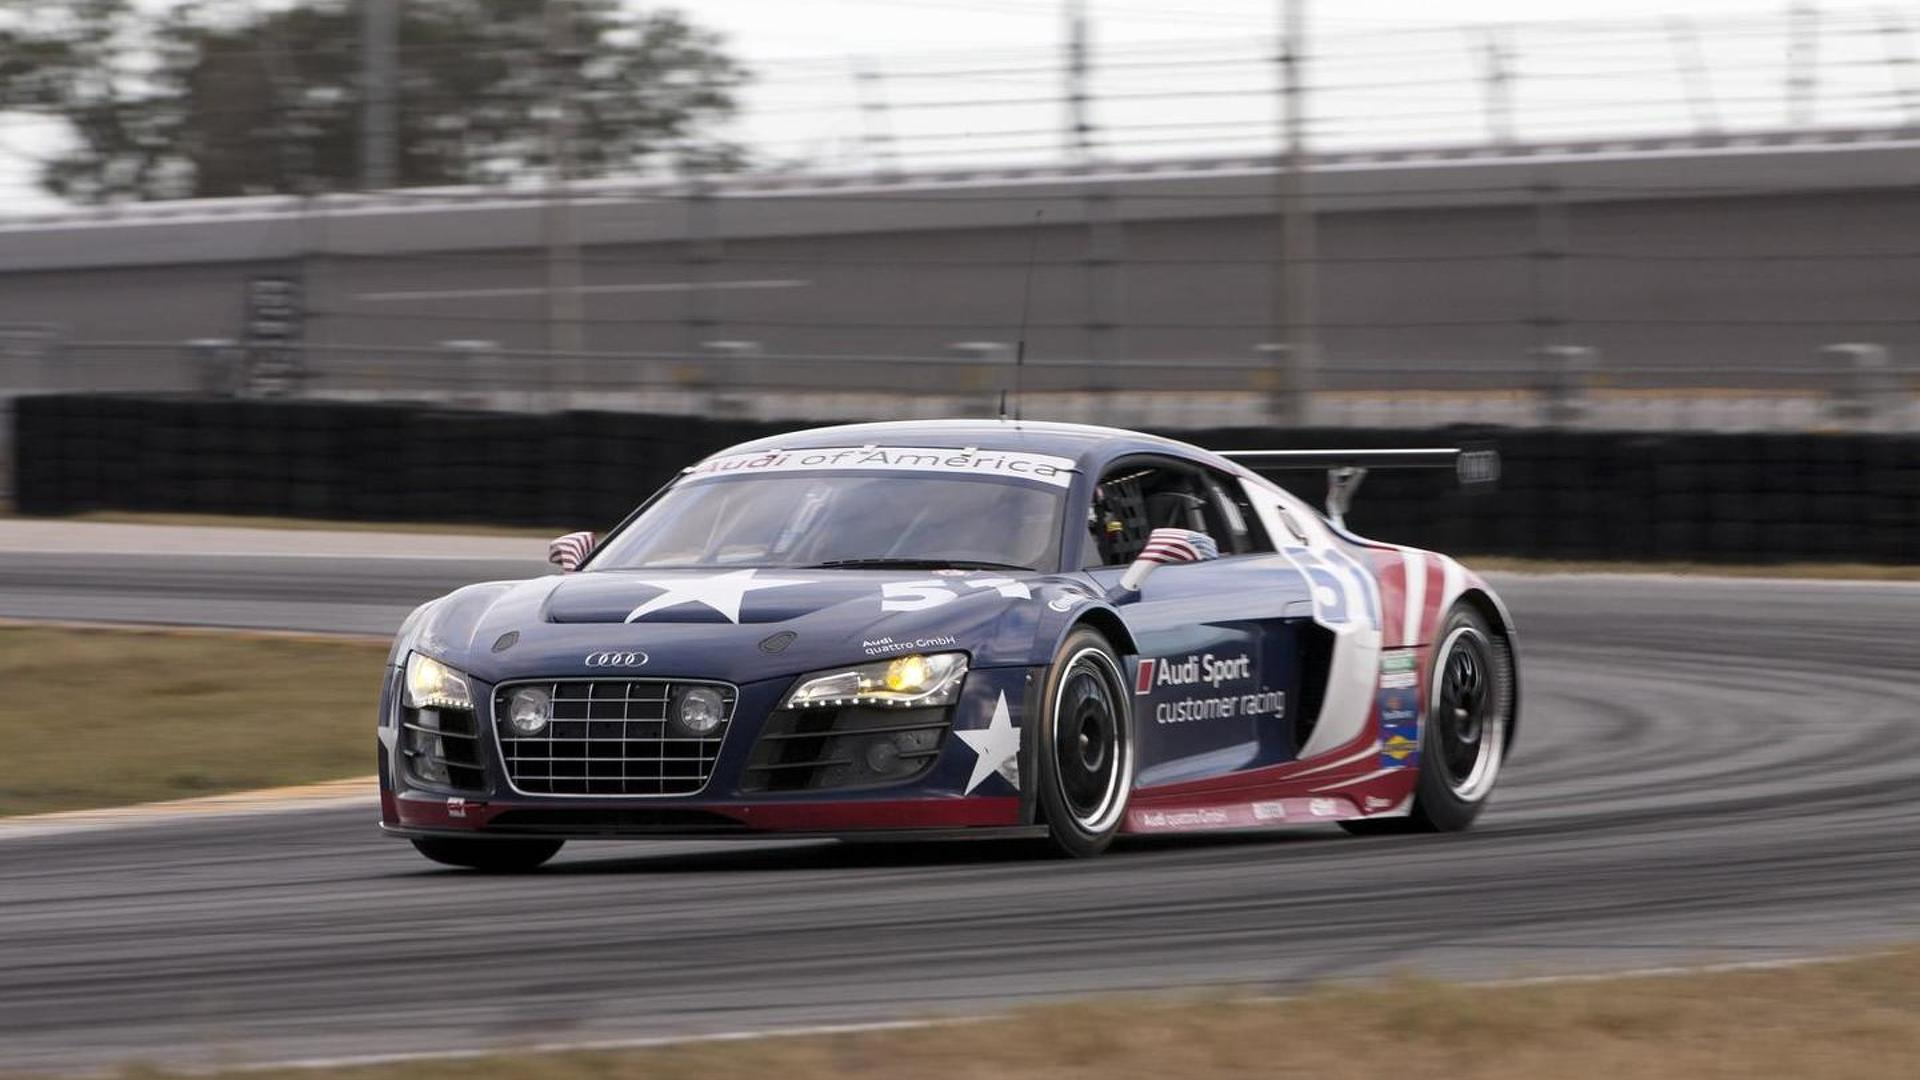 Audi R8 GRAND-AM completes final test at Daytona